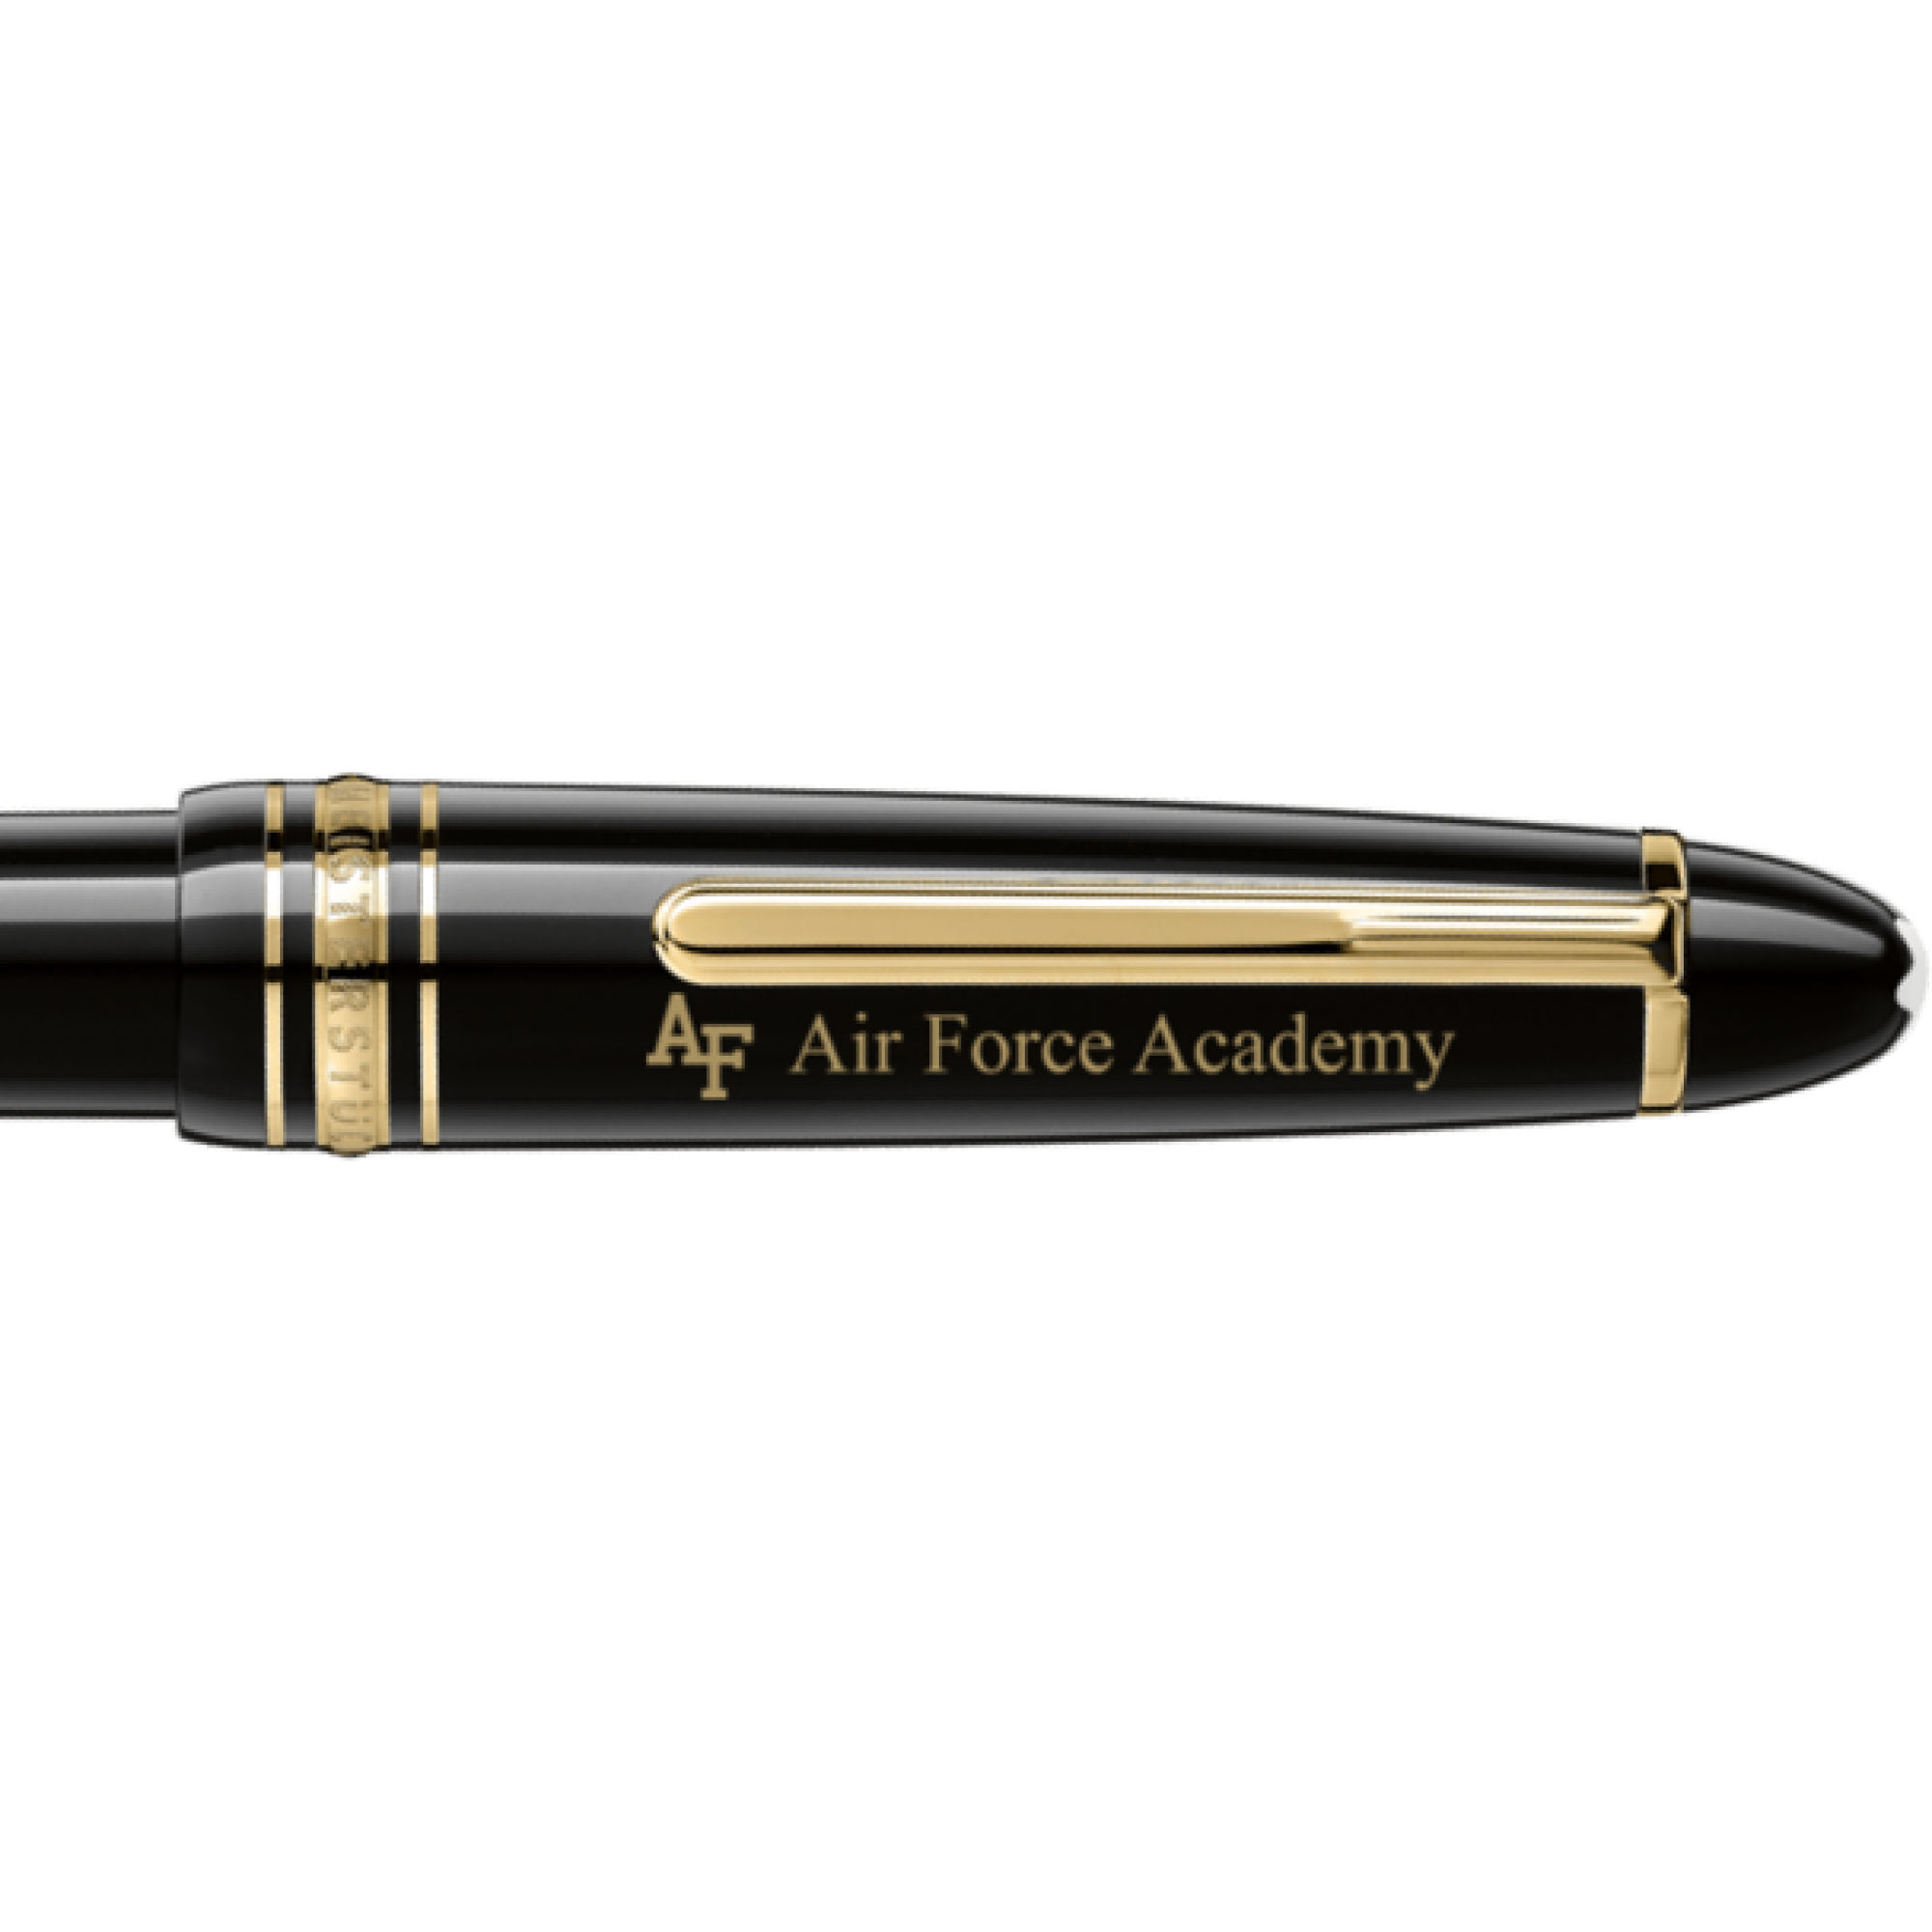 US Air Force Academy Montblanc Meisterstück LeGrand Ballpoint Pen in Gold